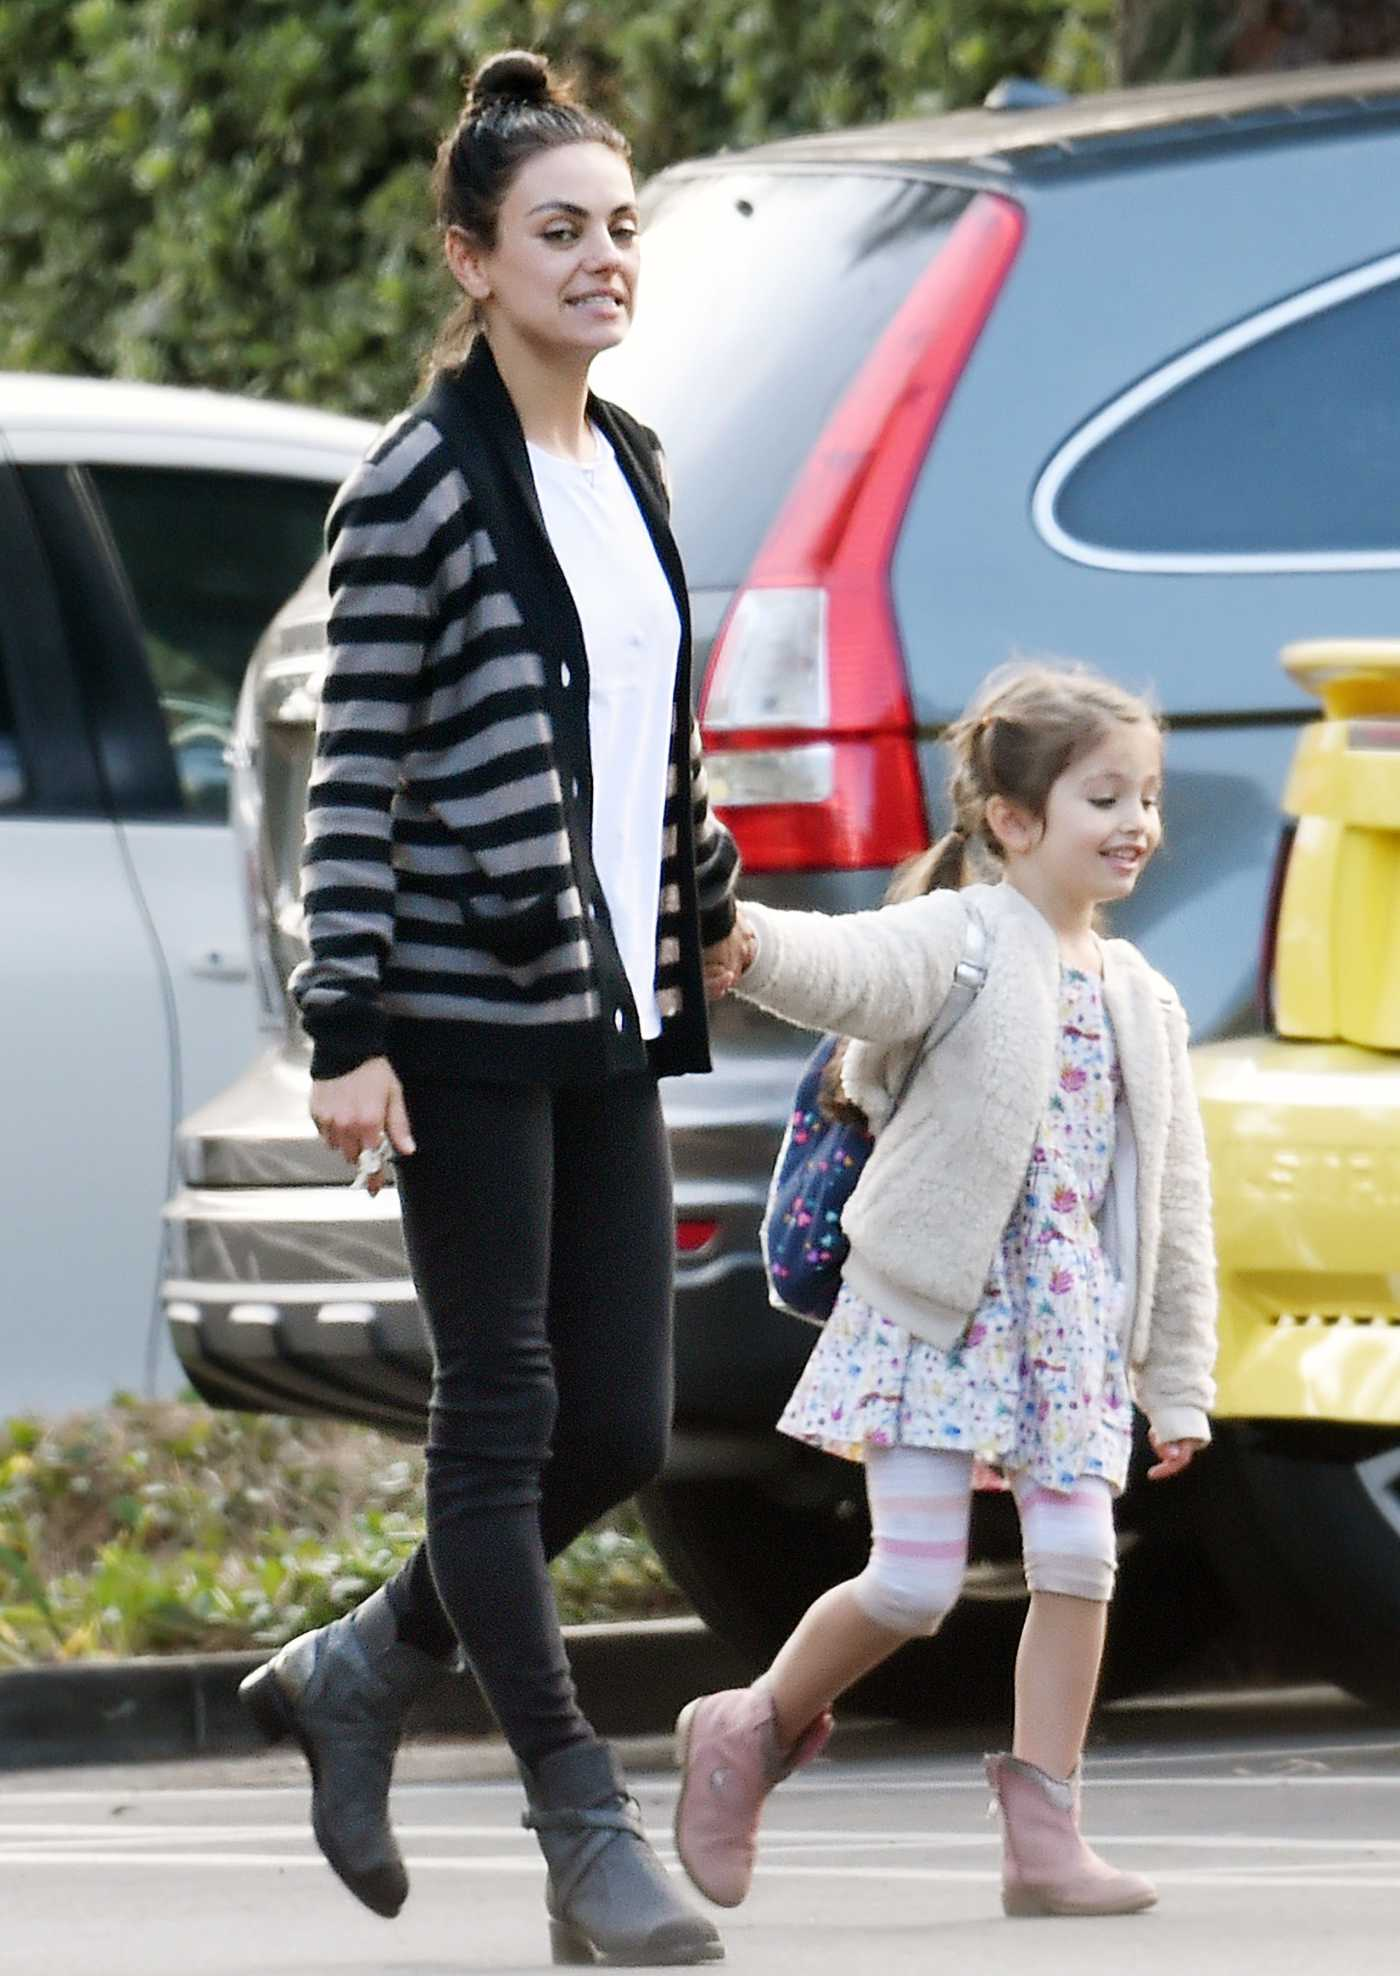 Mila Kunis in a Striped Cardigan Was Seen Out with Her Daughter Wyatt in Beverly Hills 11/06/2019